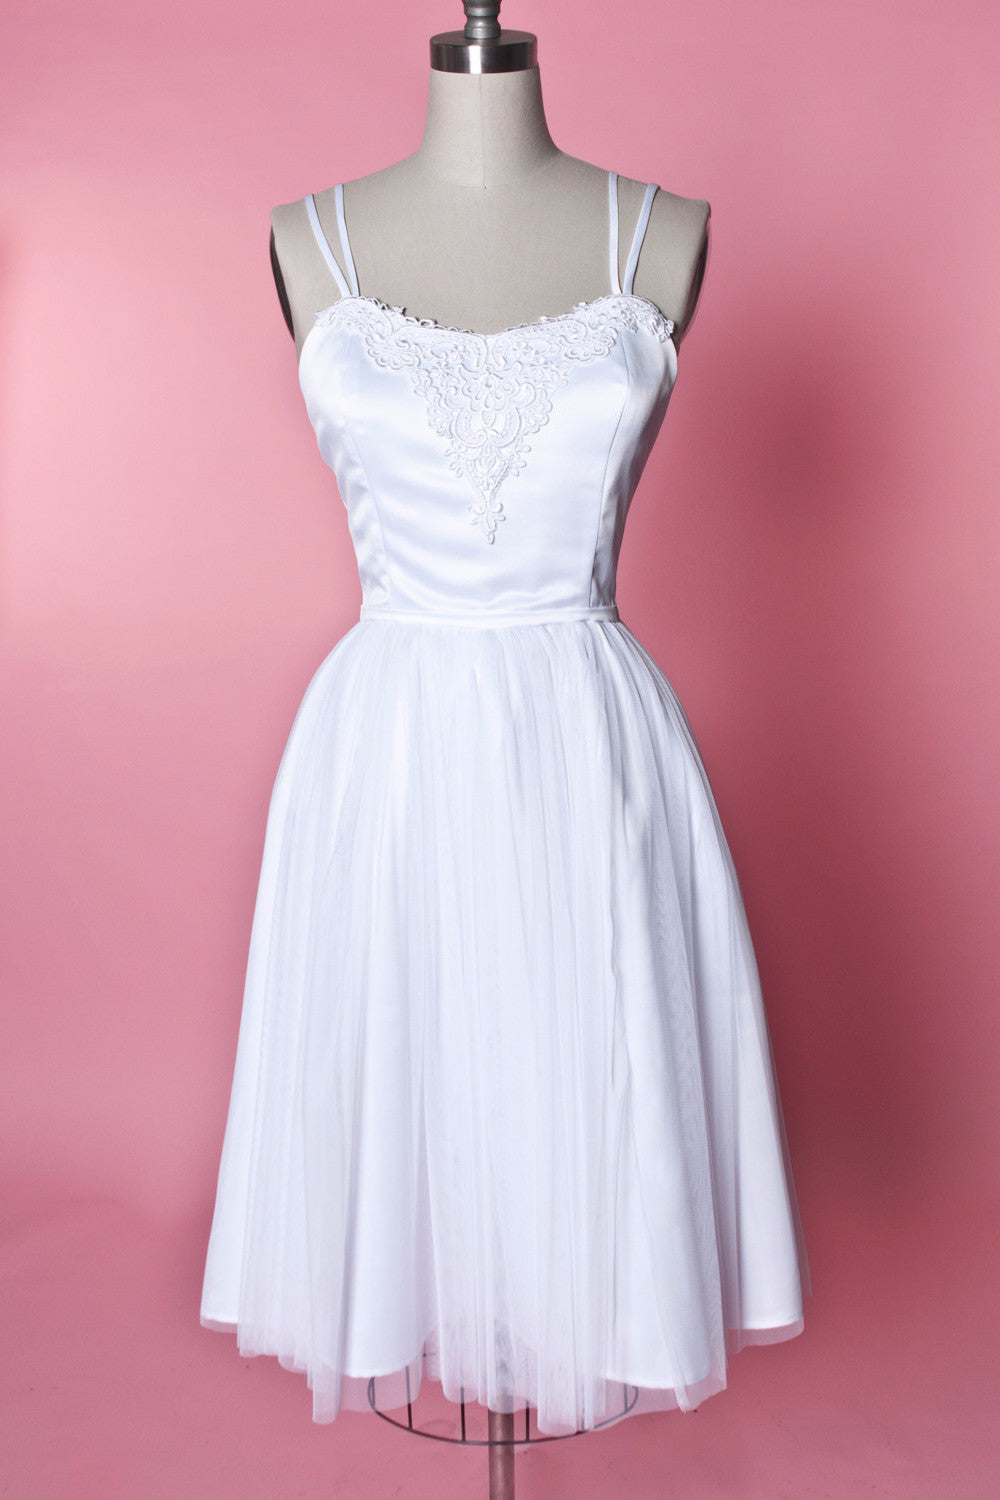 BP Pirouette Dress - White Tulle - Heart of Haute  - 2